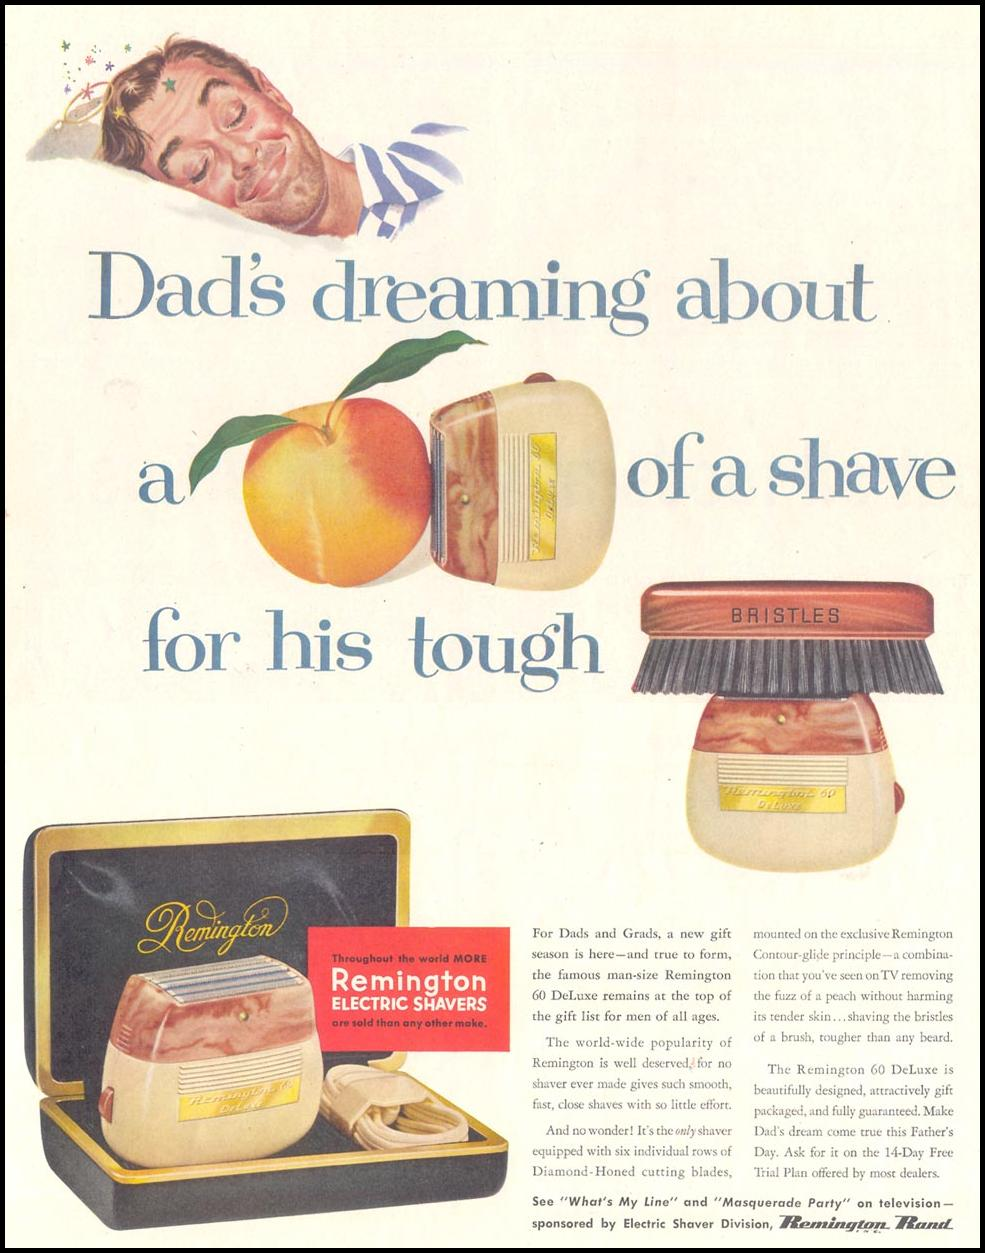 REMINGTON ELECTRIC SHAVERS SATURDAY EVENING POST 06/04/1955